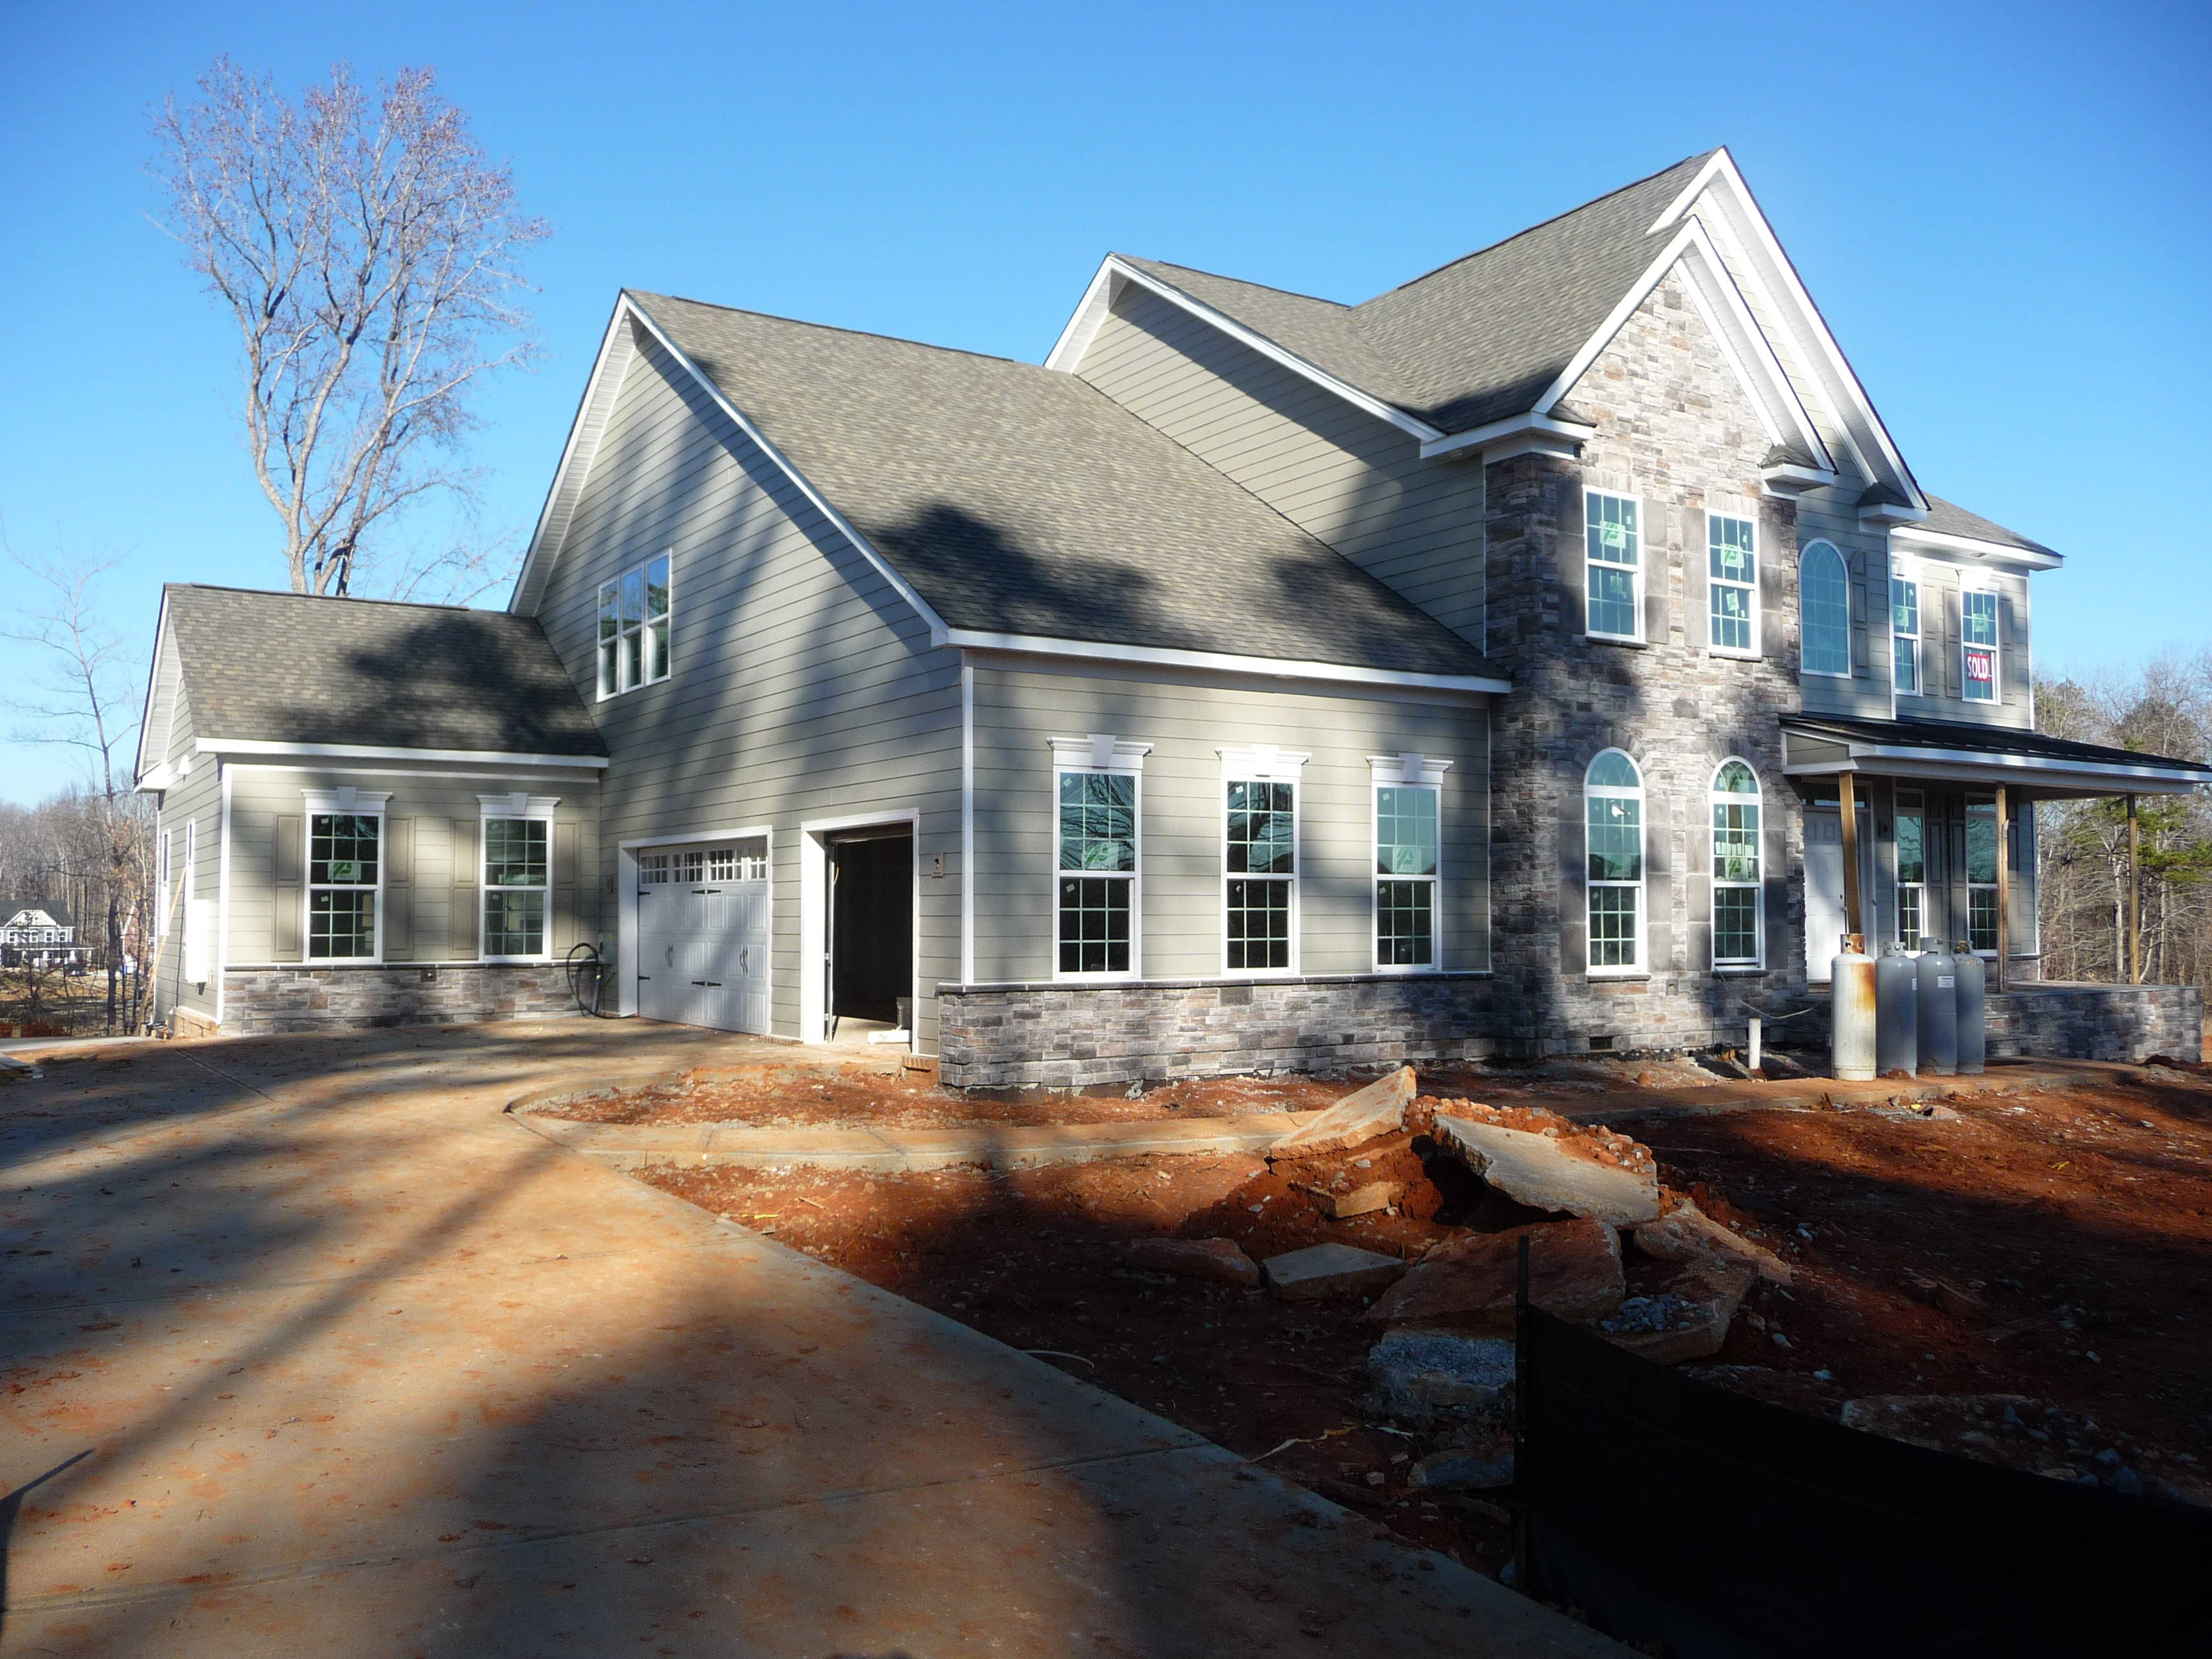 Two Story Homes For Sale In Summerwood Mint Hill North